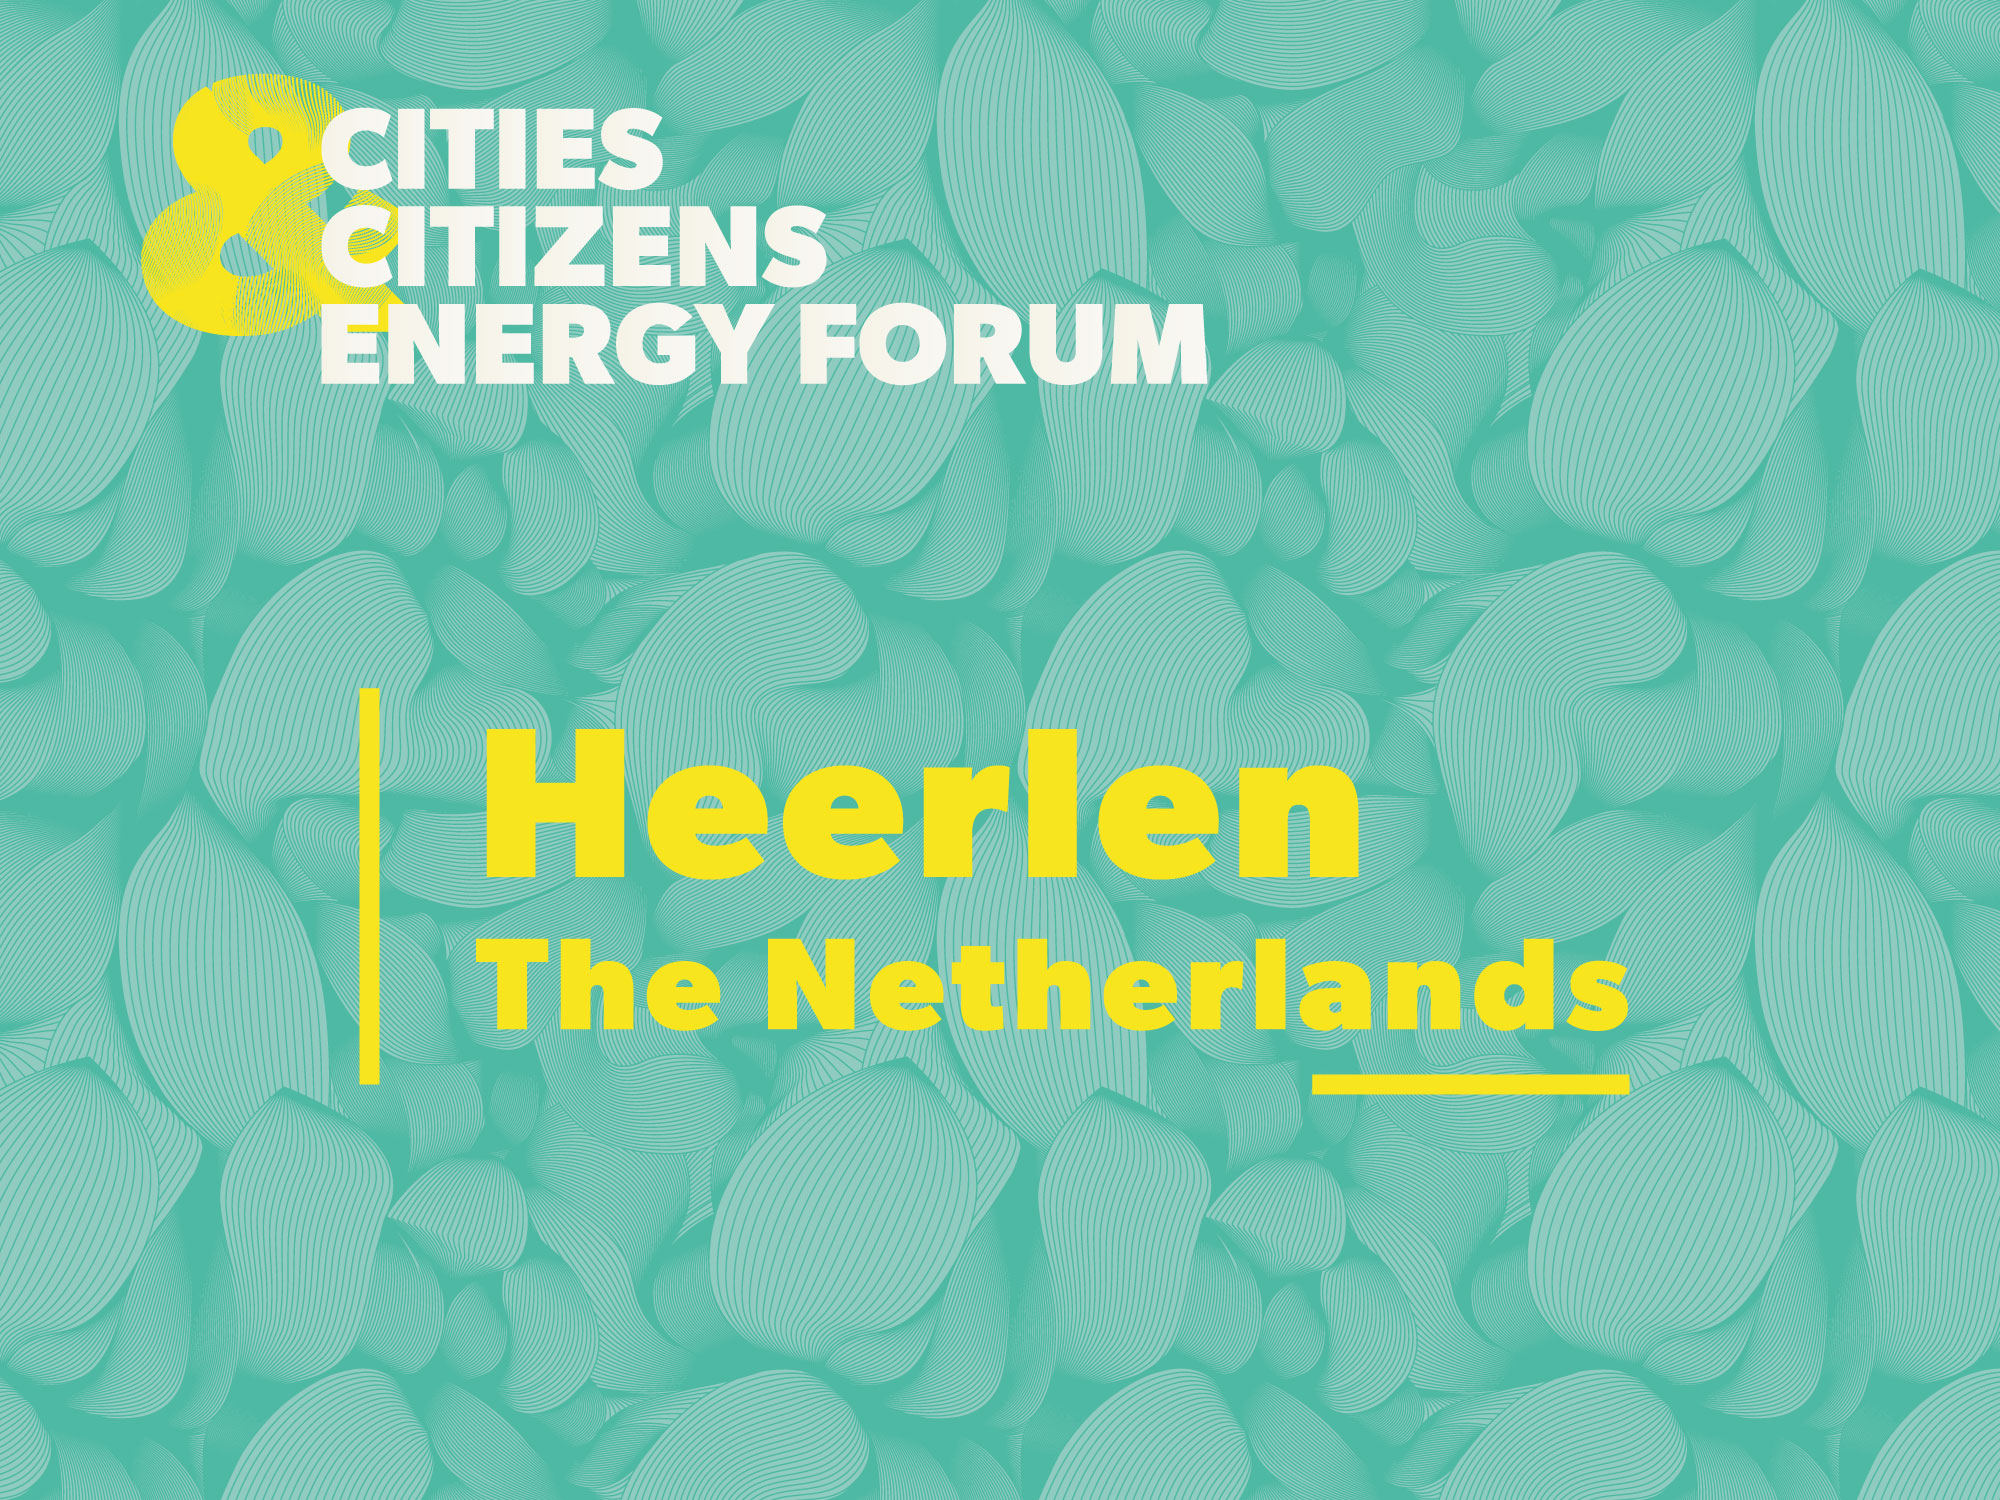 Cities and Citizens Energy Forum – Save the date